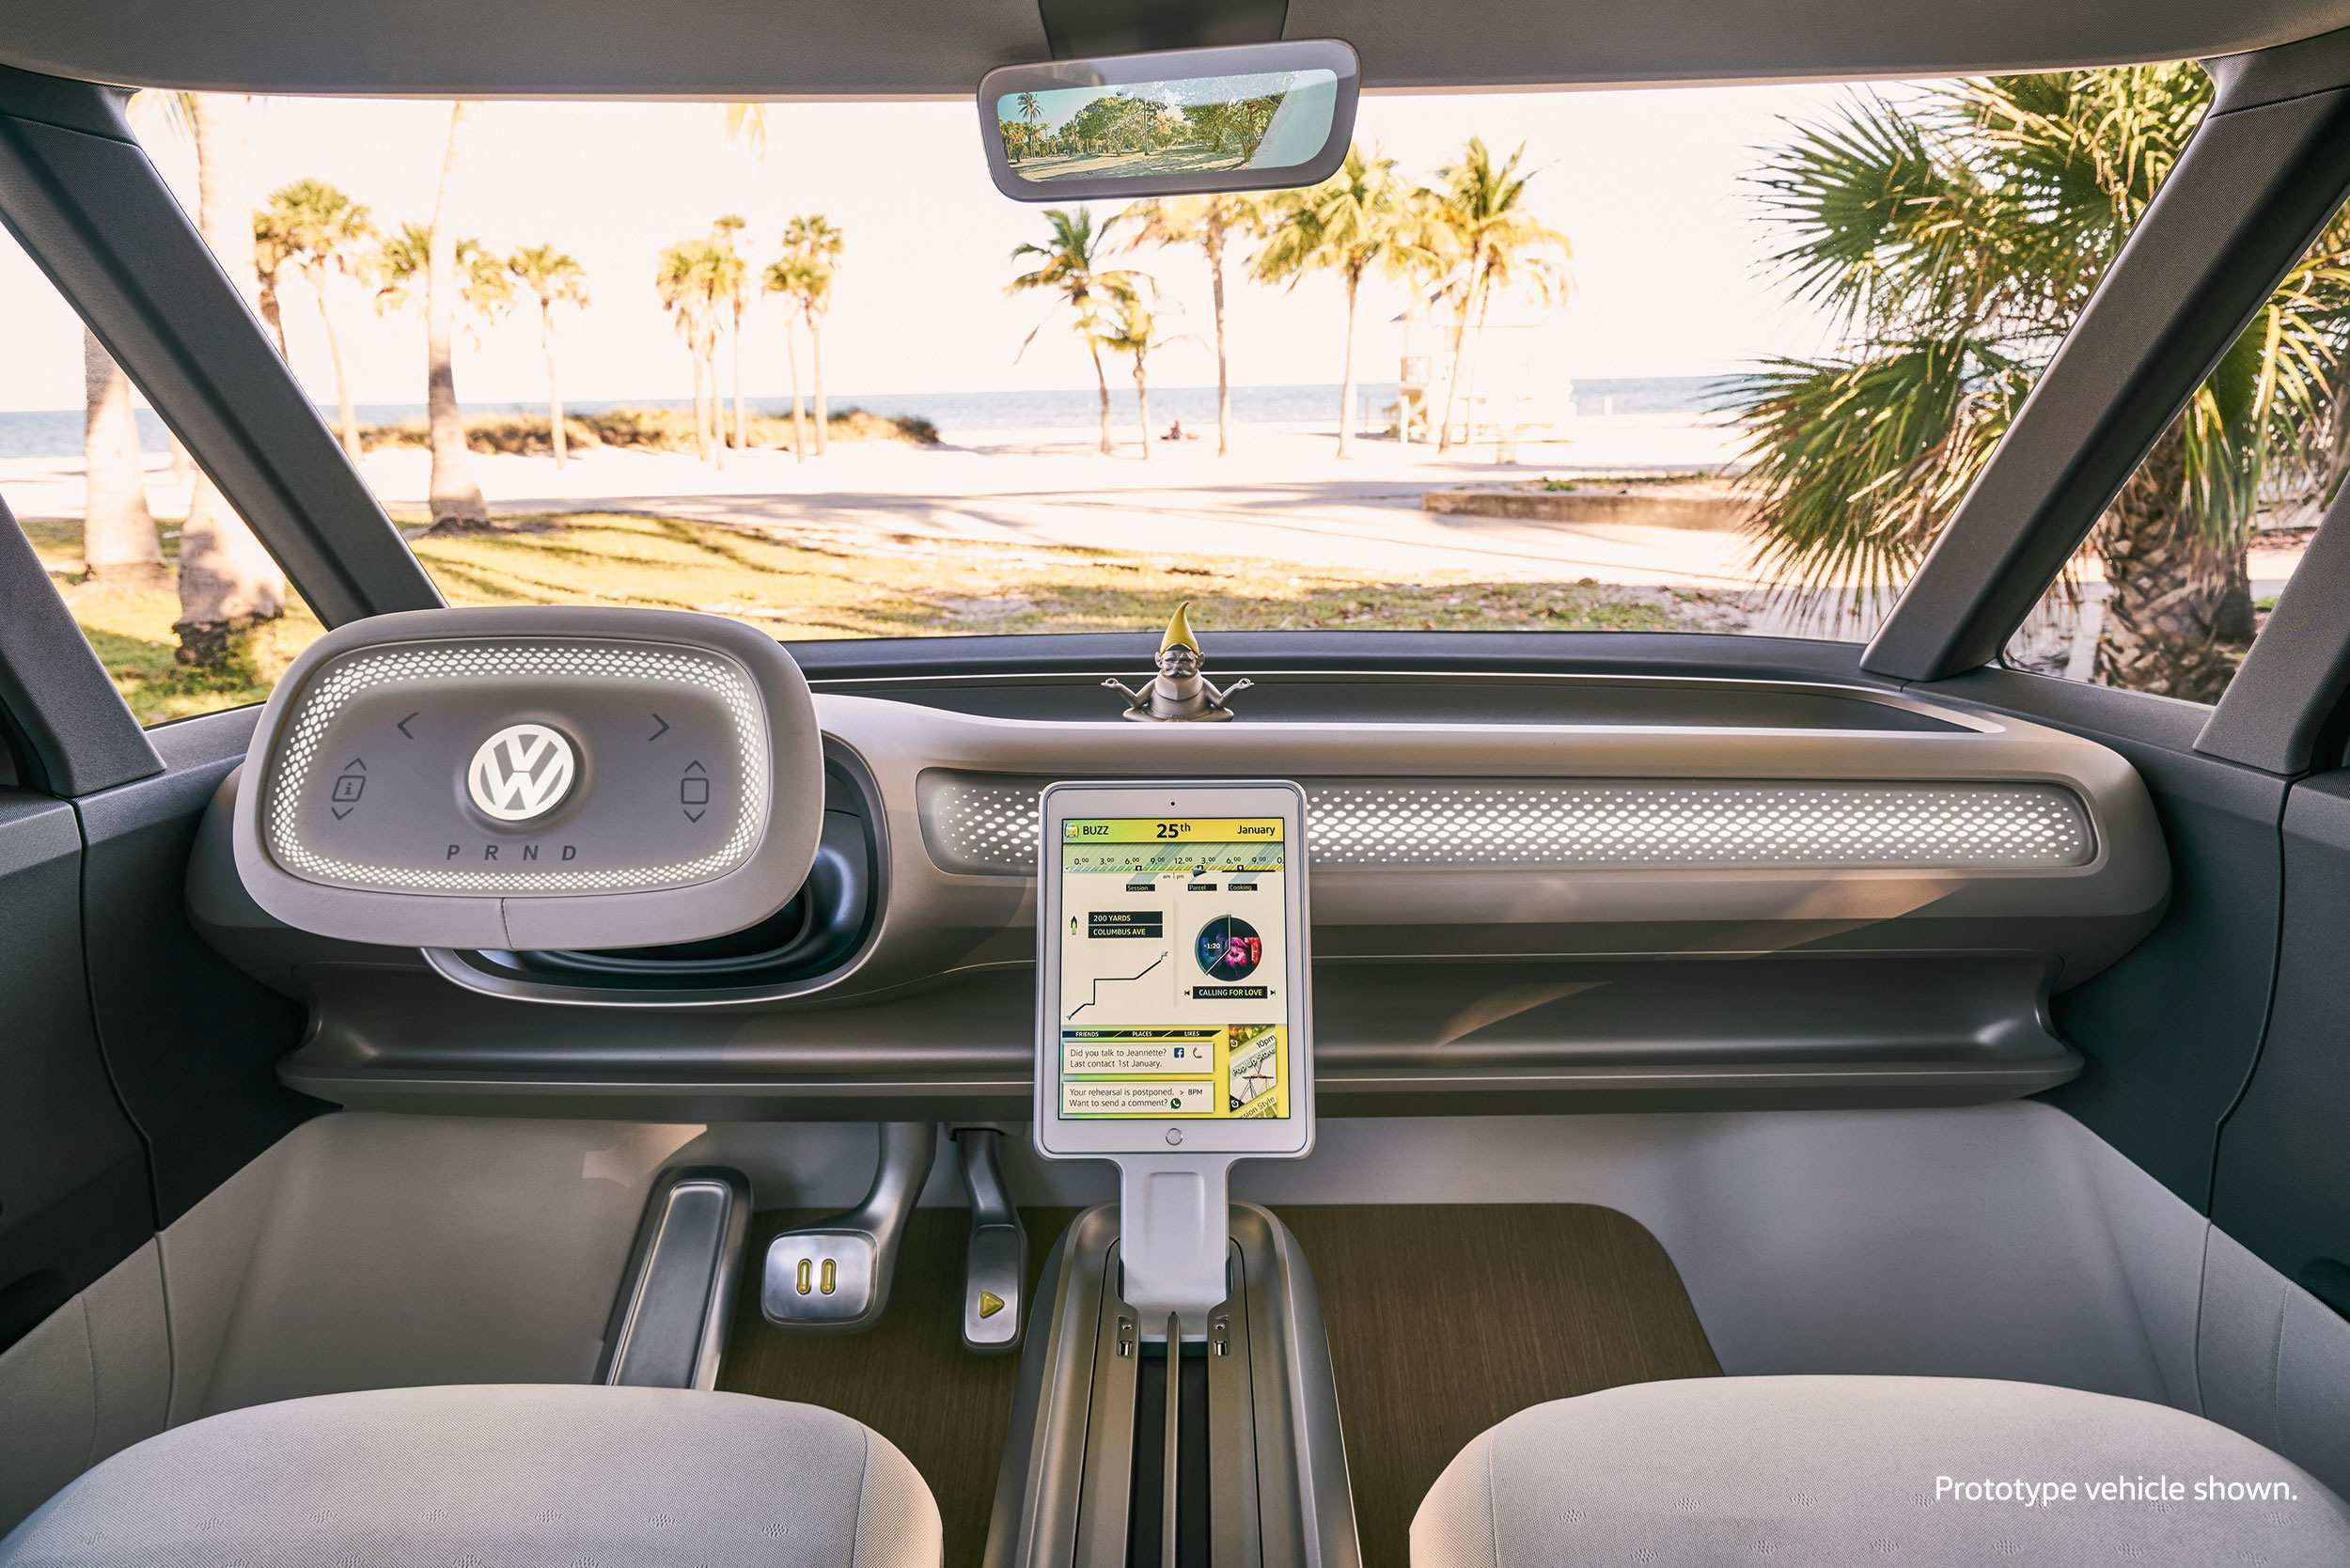 19 All New Volkswagen Van 2020 Price First Drive for Volkswagen Van 2020 Price